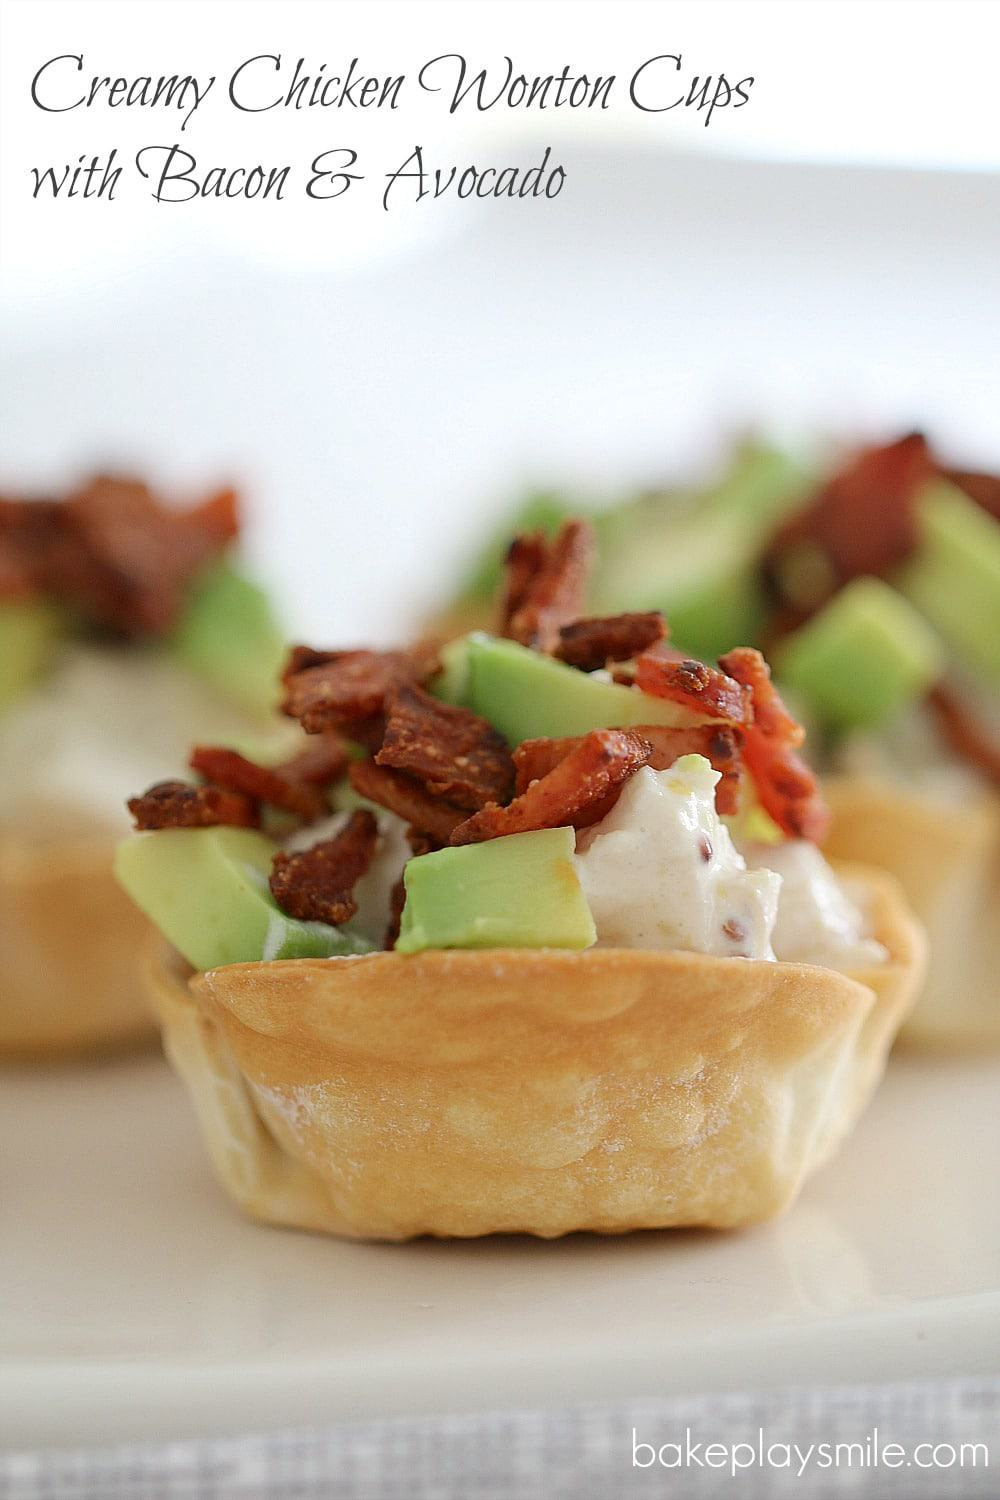 Creamy Chicken Wonton Cups with Bacon & Avocado